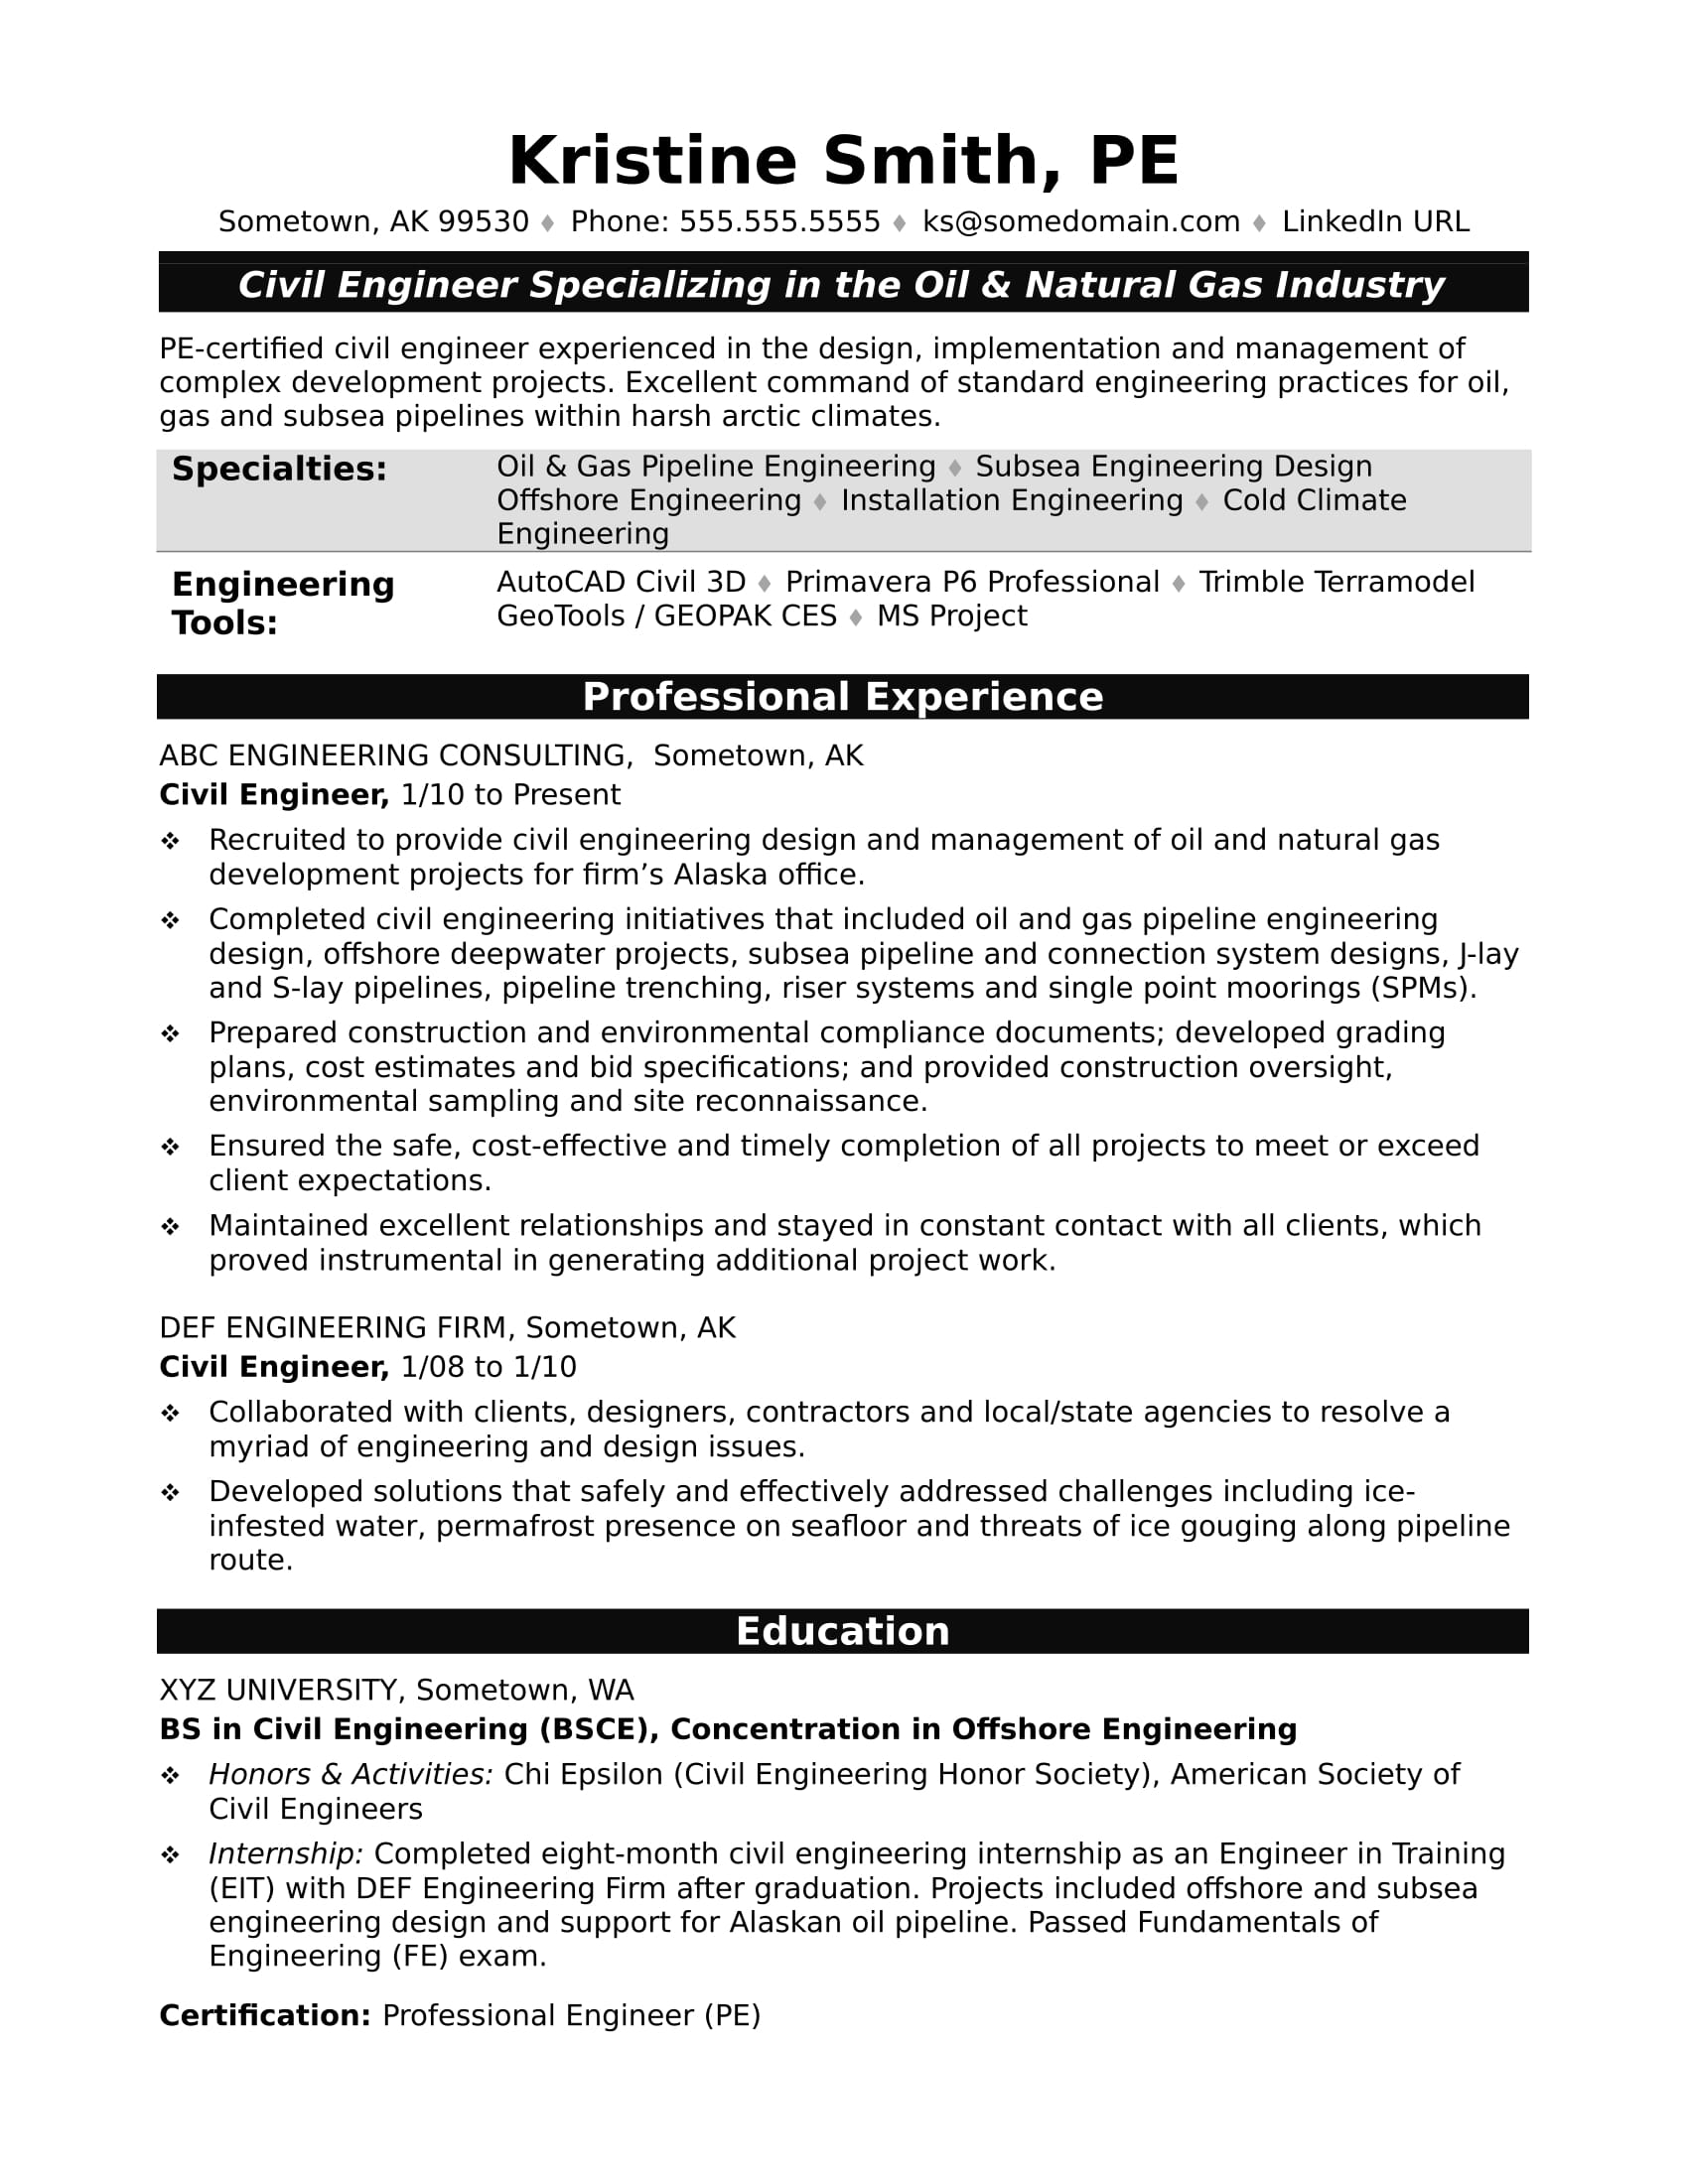 Sample Resume for a Midlevel Civil Engineer | Monster com